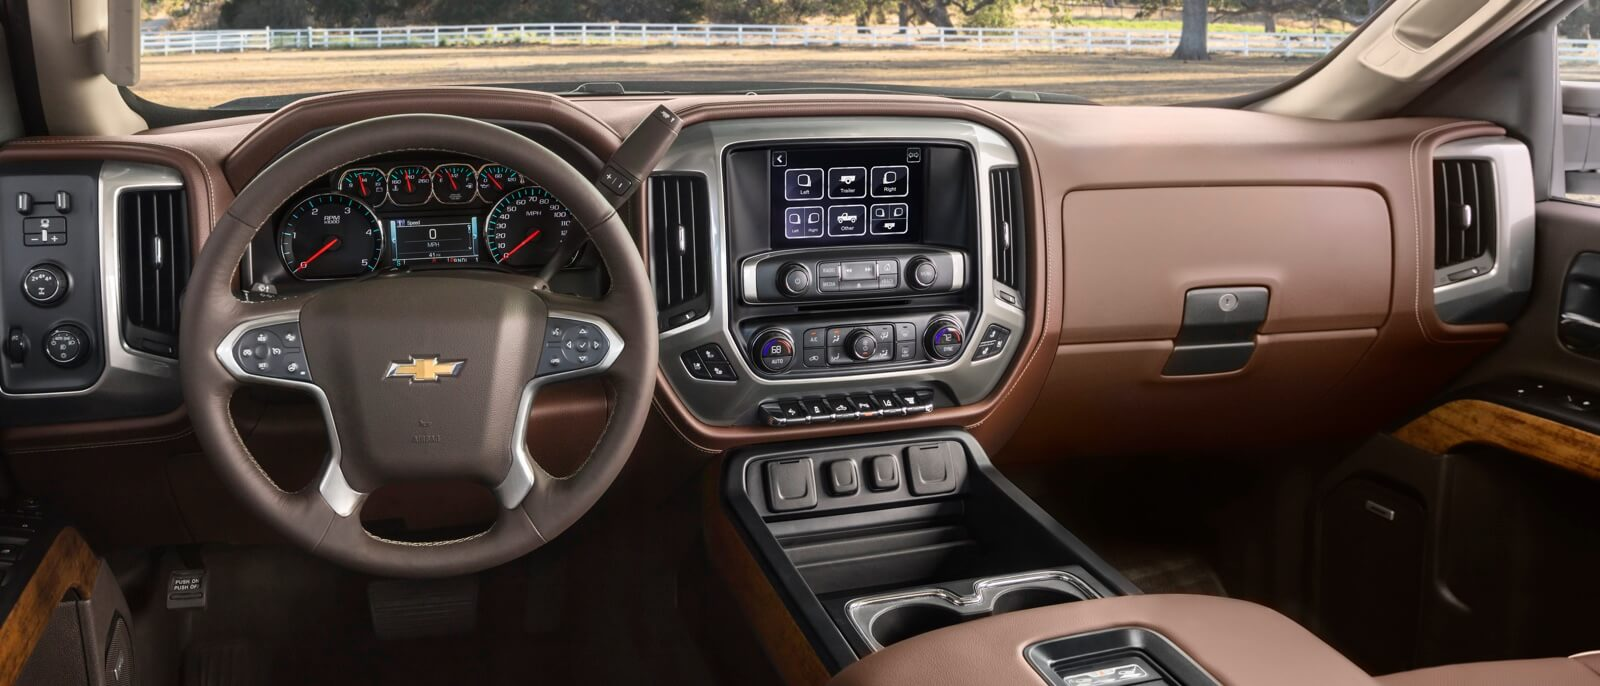 Chevy Silverado 2017 Interior